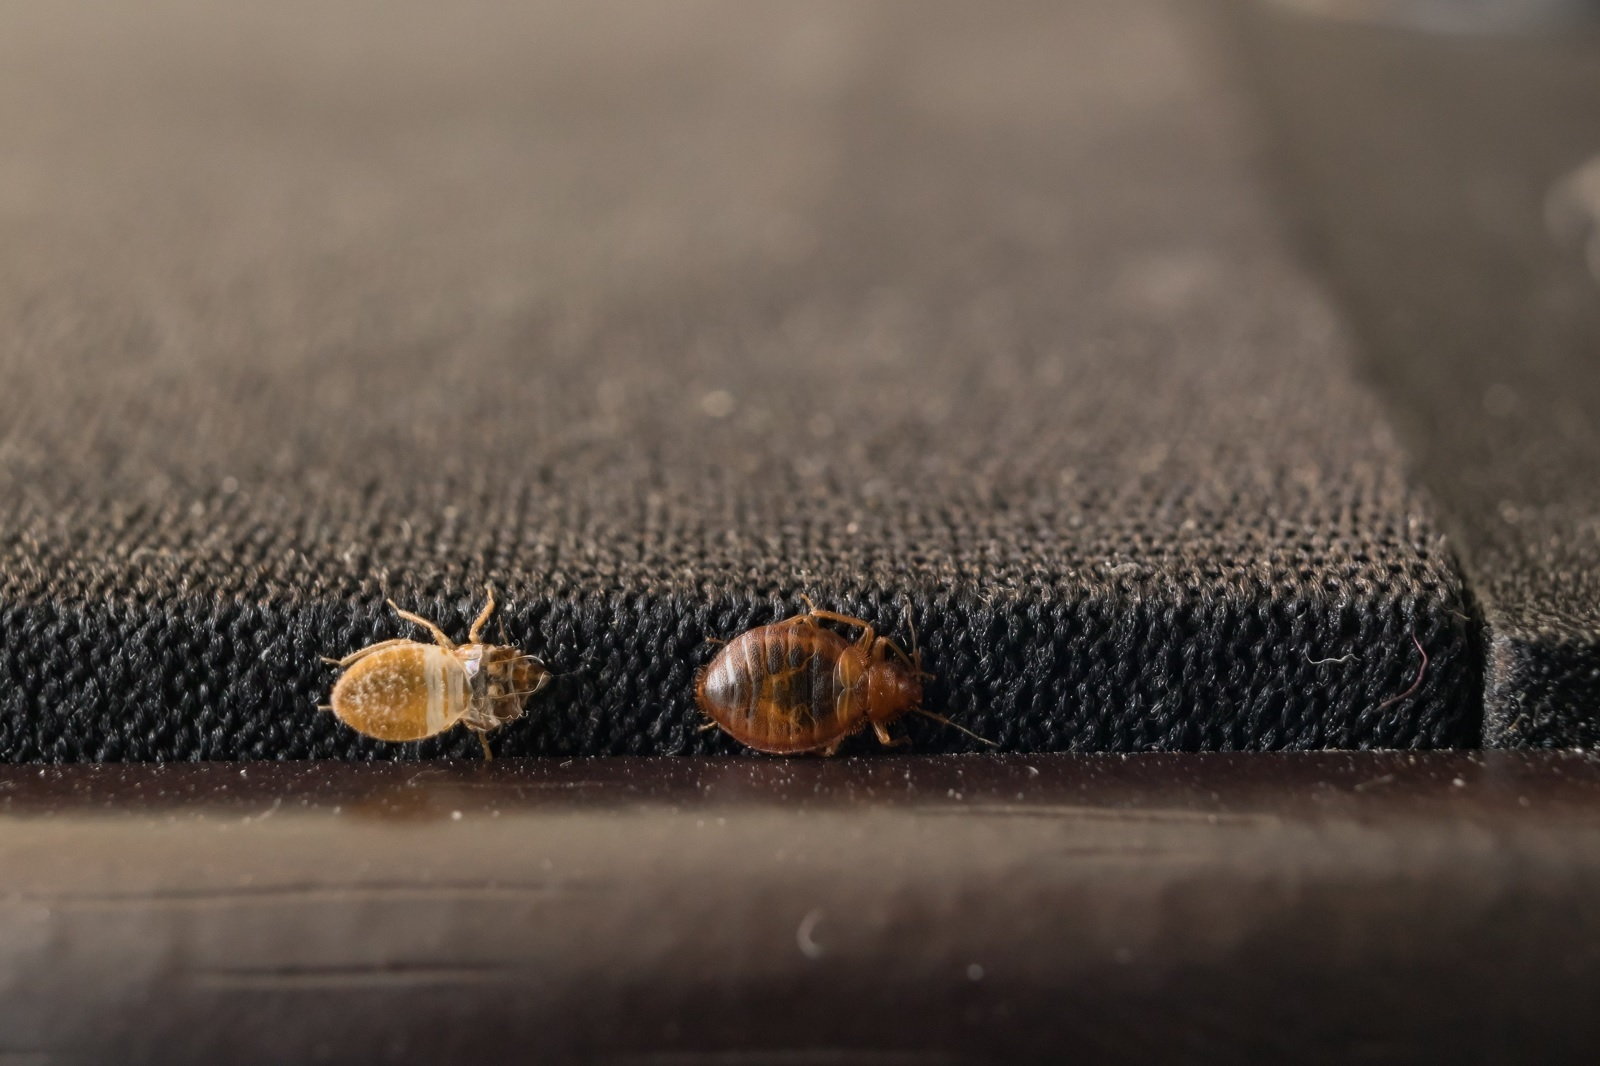 Bedbugs Move From Place to Place